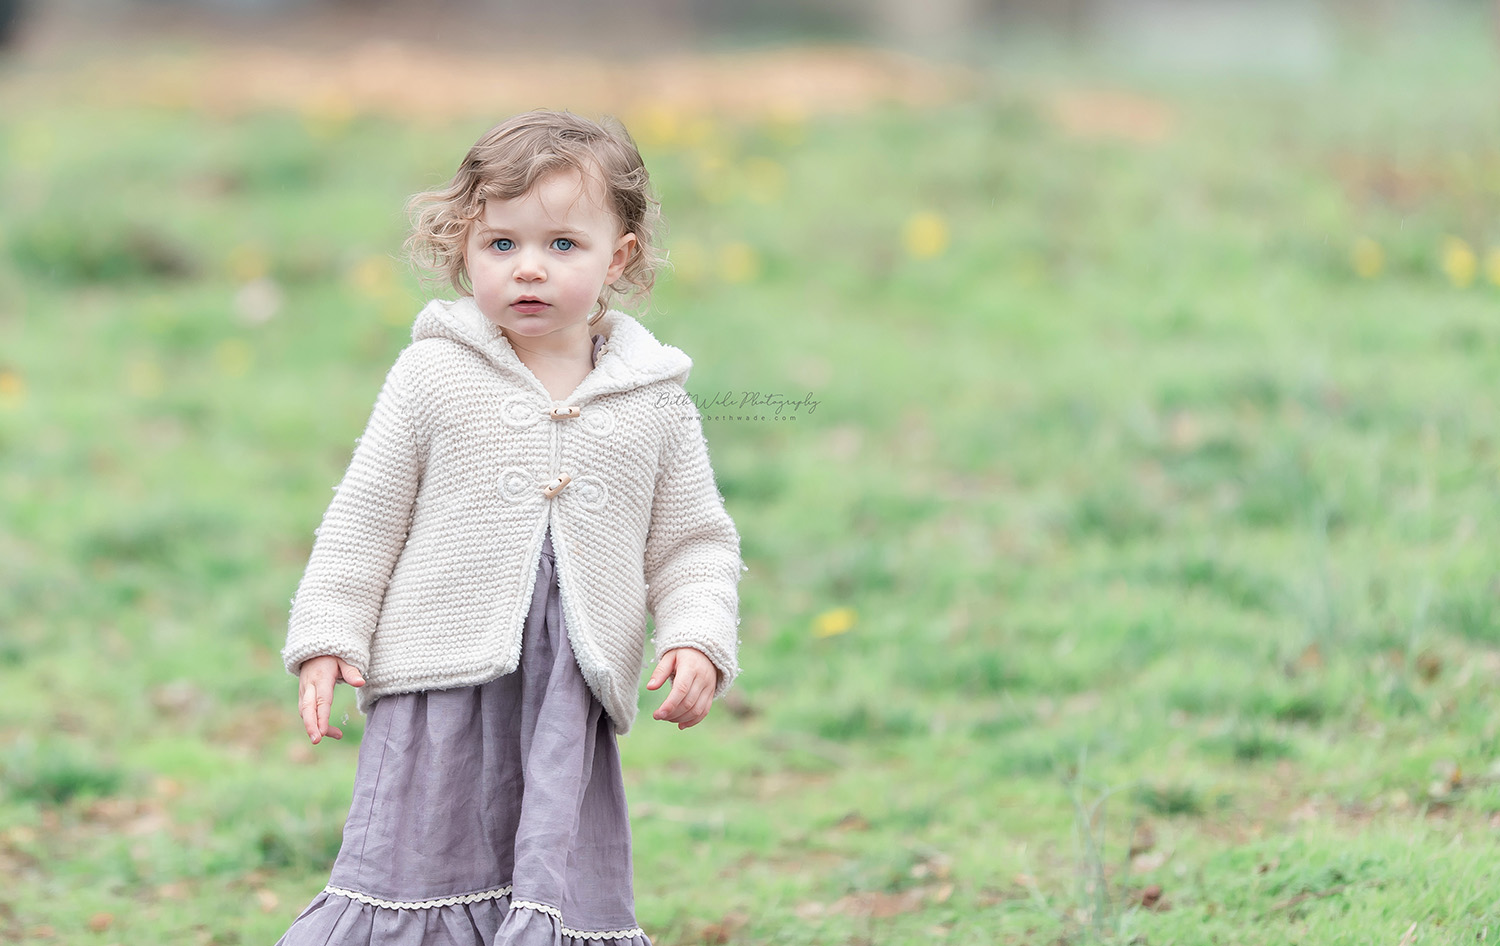 sweet alice jane ~ our girl is 2 years old {lake wylie baby photographer}